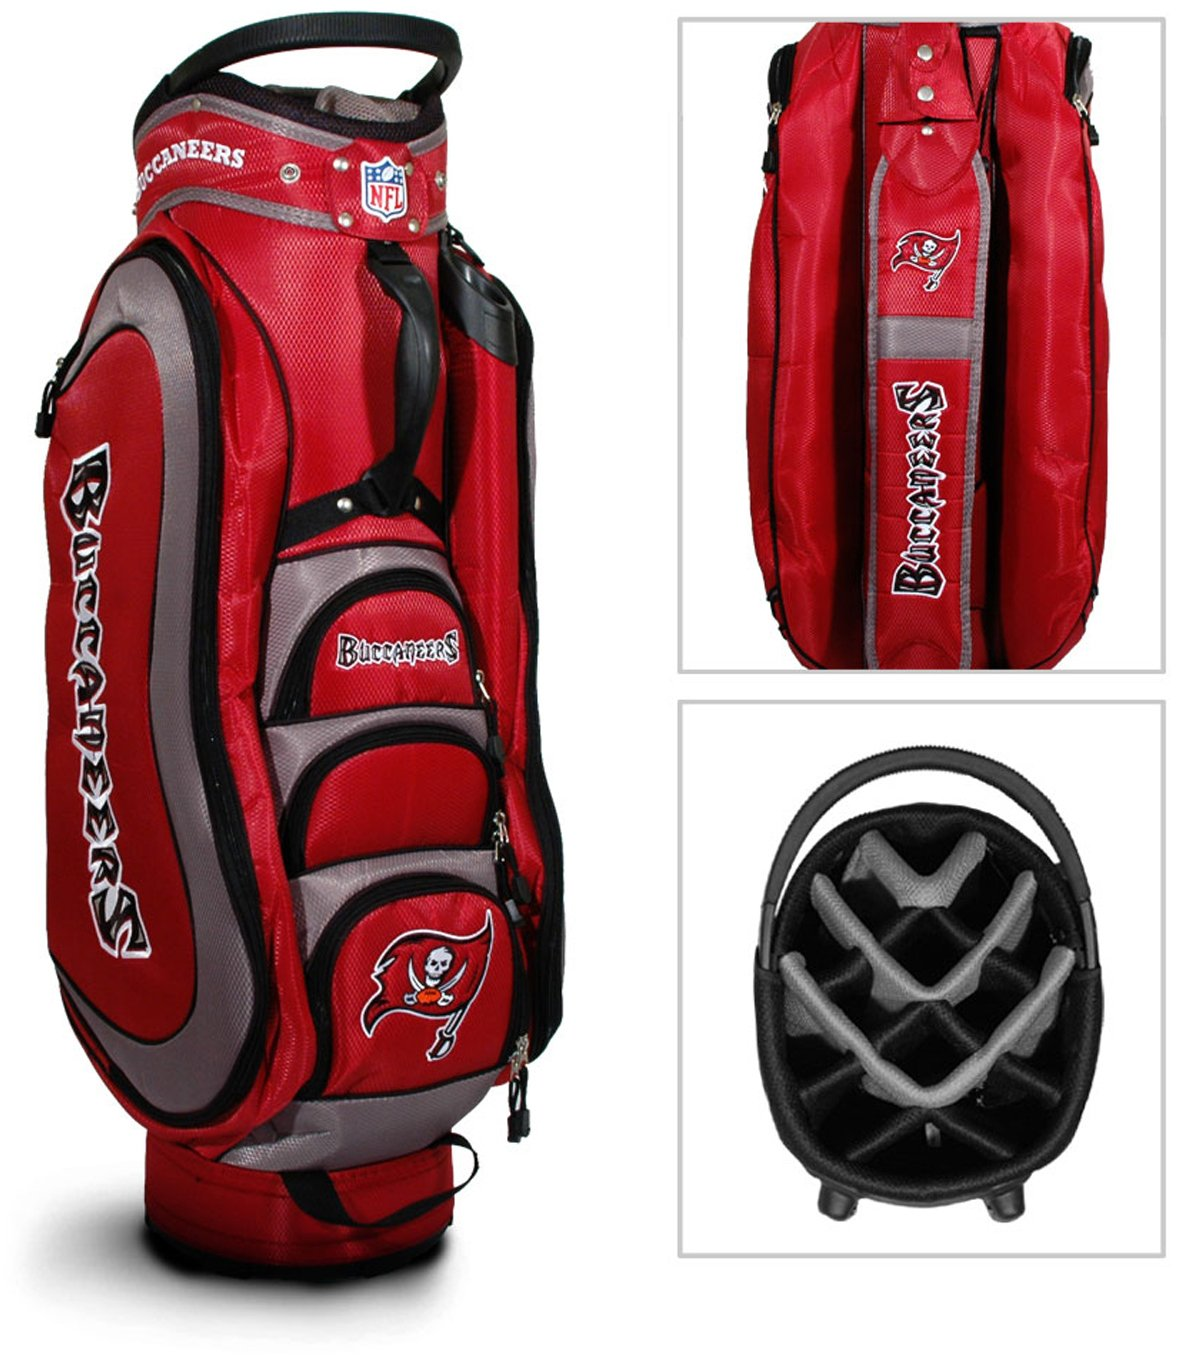 d8add0b9 NFL Tampa Bay Buccaneers Cart Golf Bag: Amazon.co.uk: Sports & Outdoors